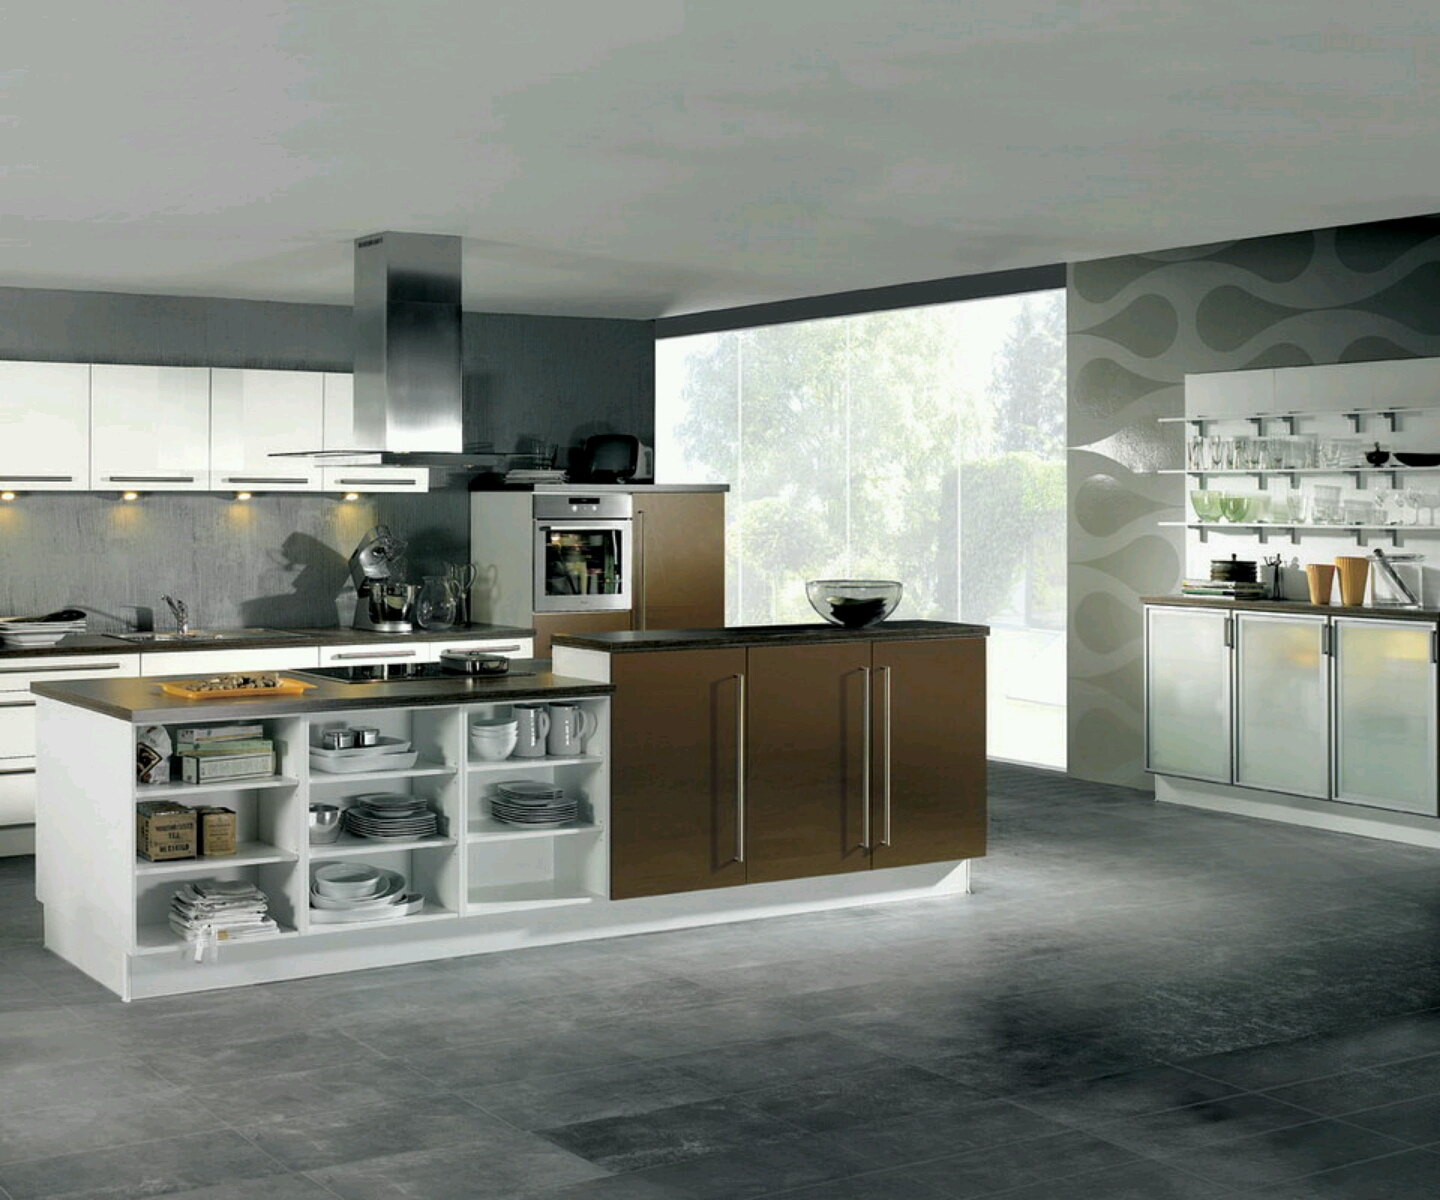 New home designs latest ultra modern kitchen designs ideas for Kitchen design ideas images